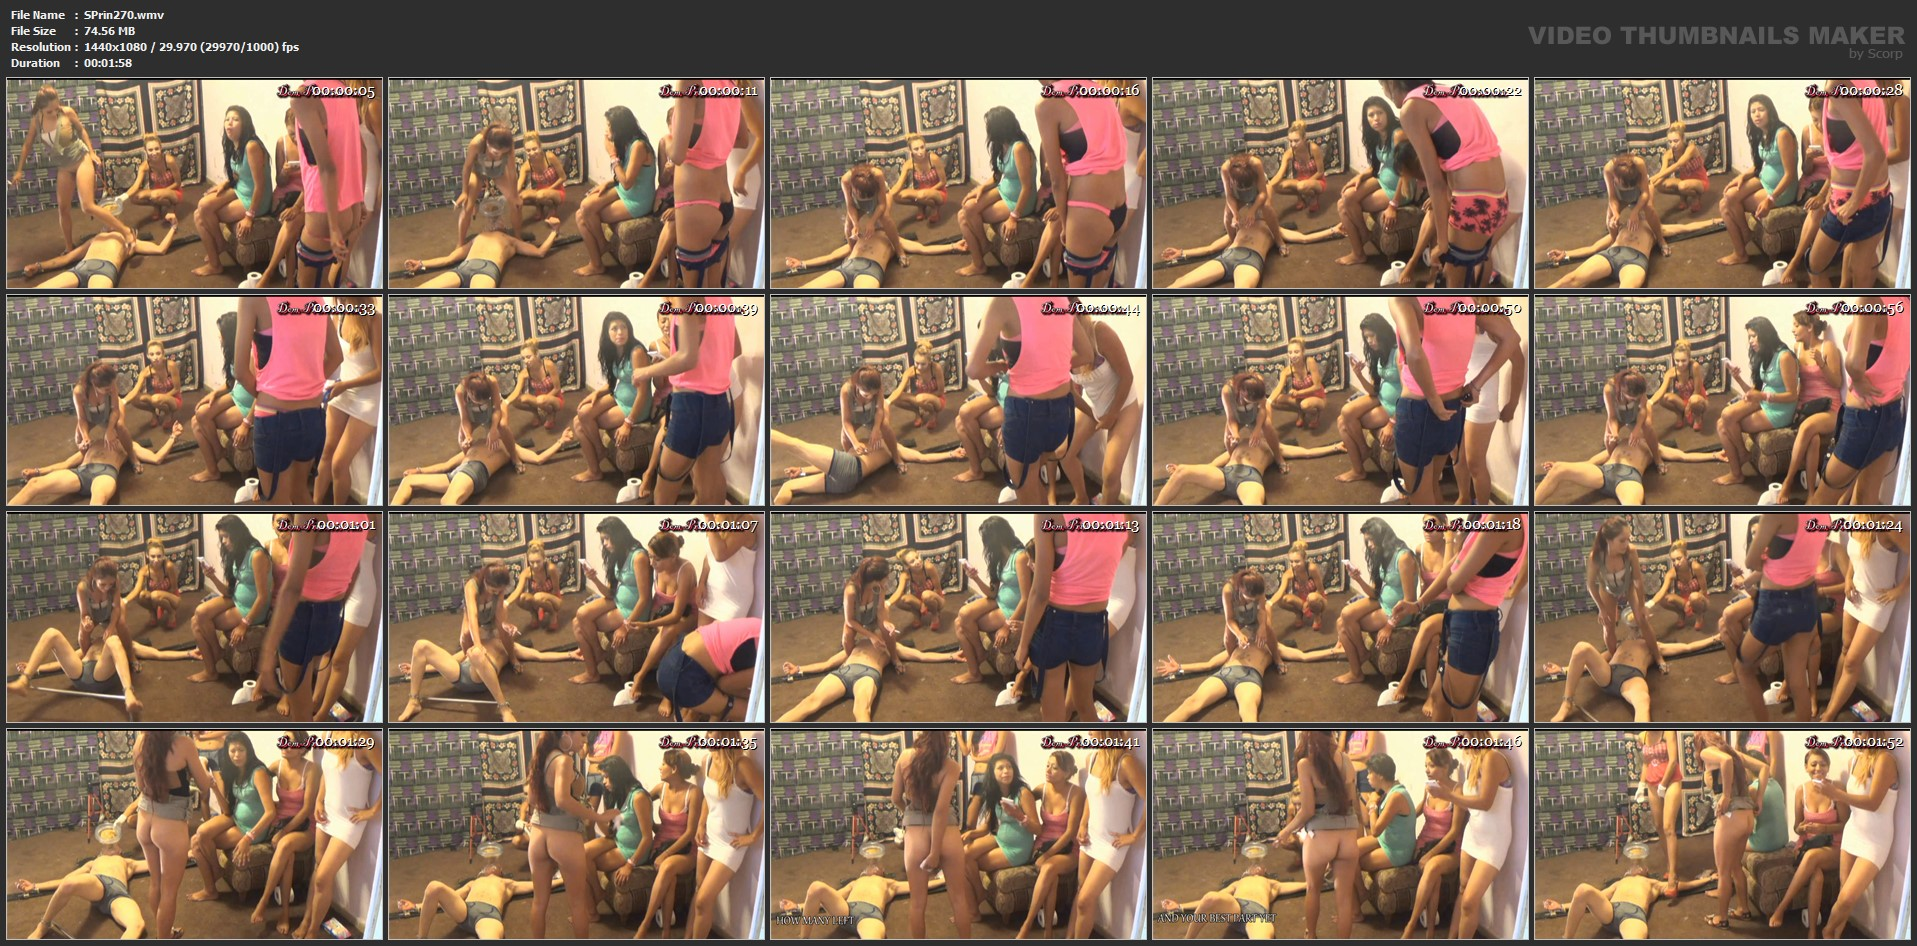 [SCAT-PRINCESS] Face's Toilet Attachment Kit turns Dramatic during Filming II Part 5 Karina [FULL HD][1080p][WMV]